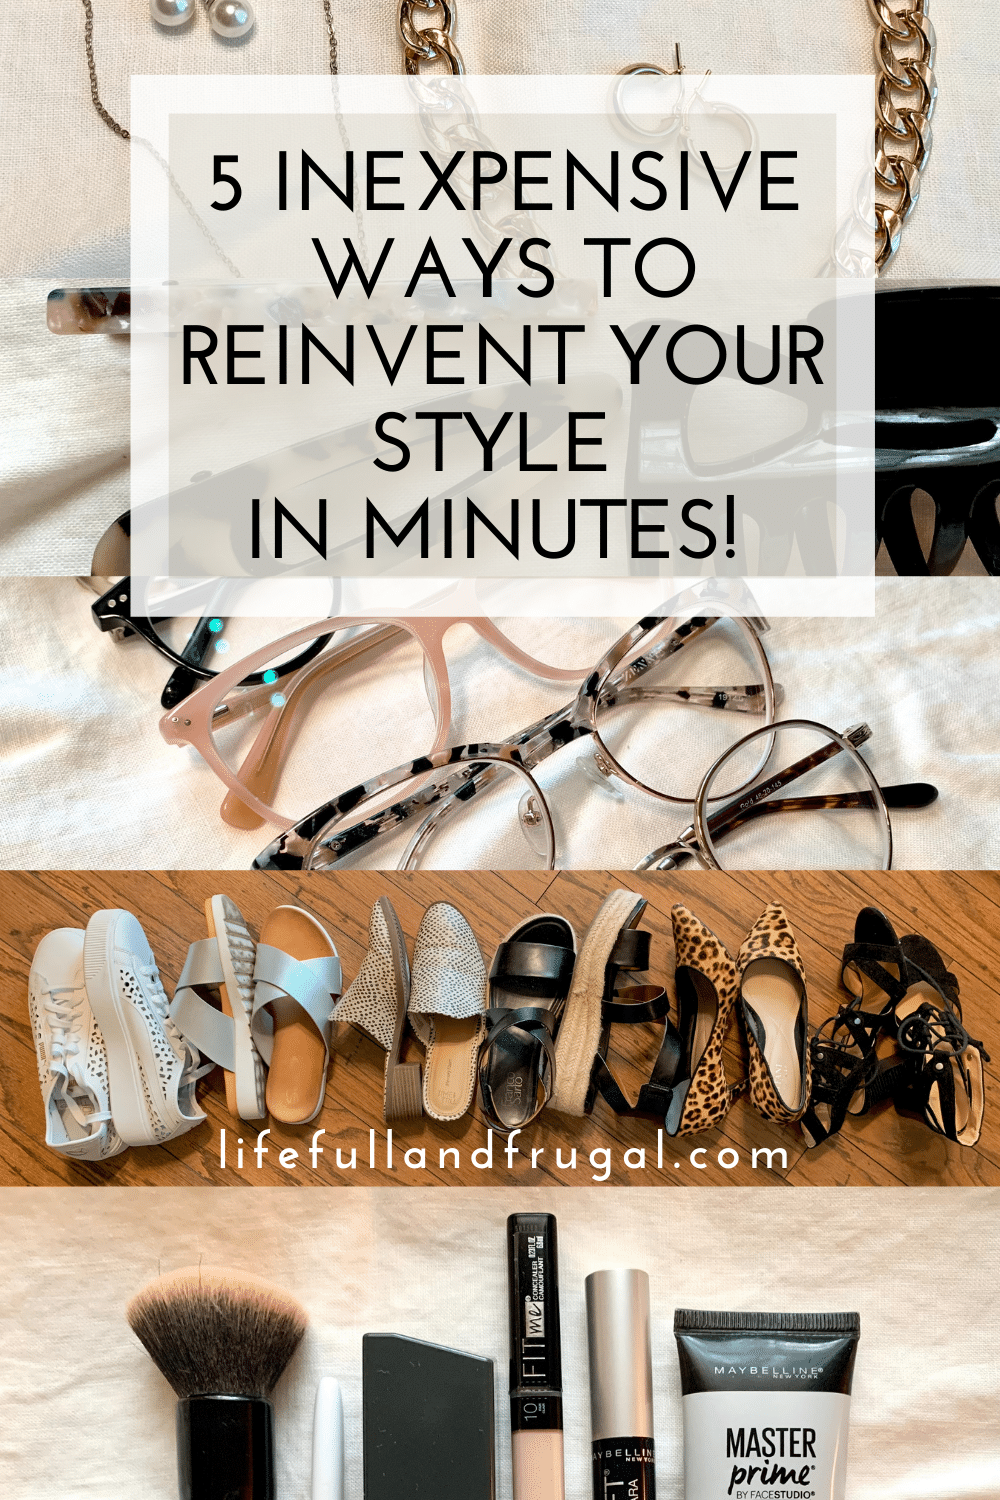 5 inexpensive ways to reinvent your style in minutes life full and frugal Pinterest